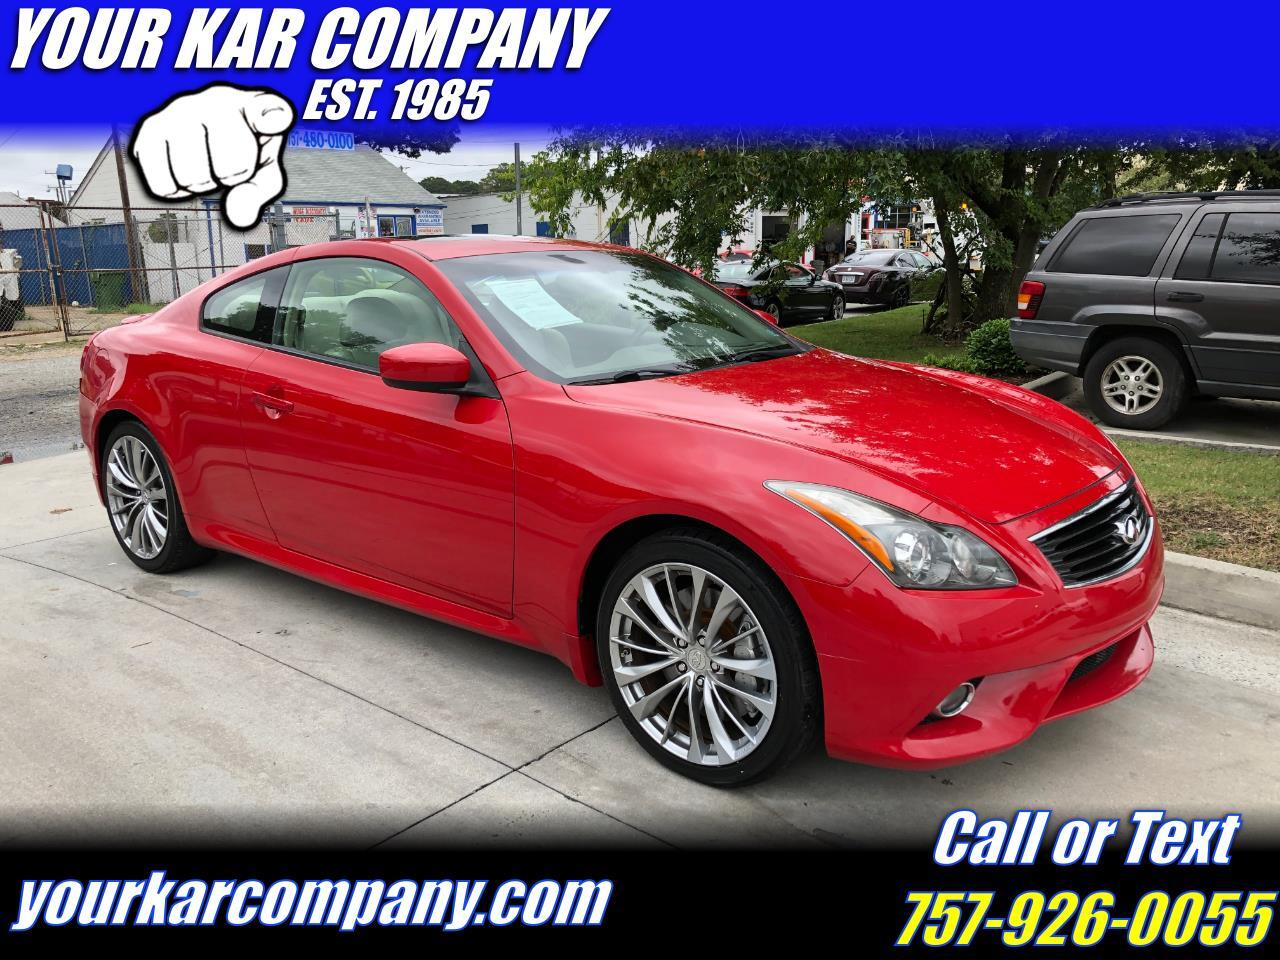 2012 Infiniti G37 Coupe 2dr Sport 6MT RWD